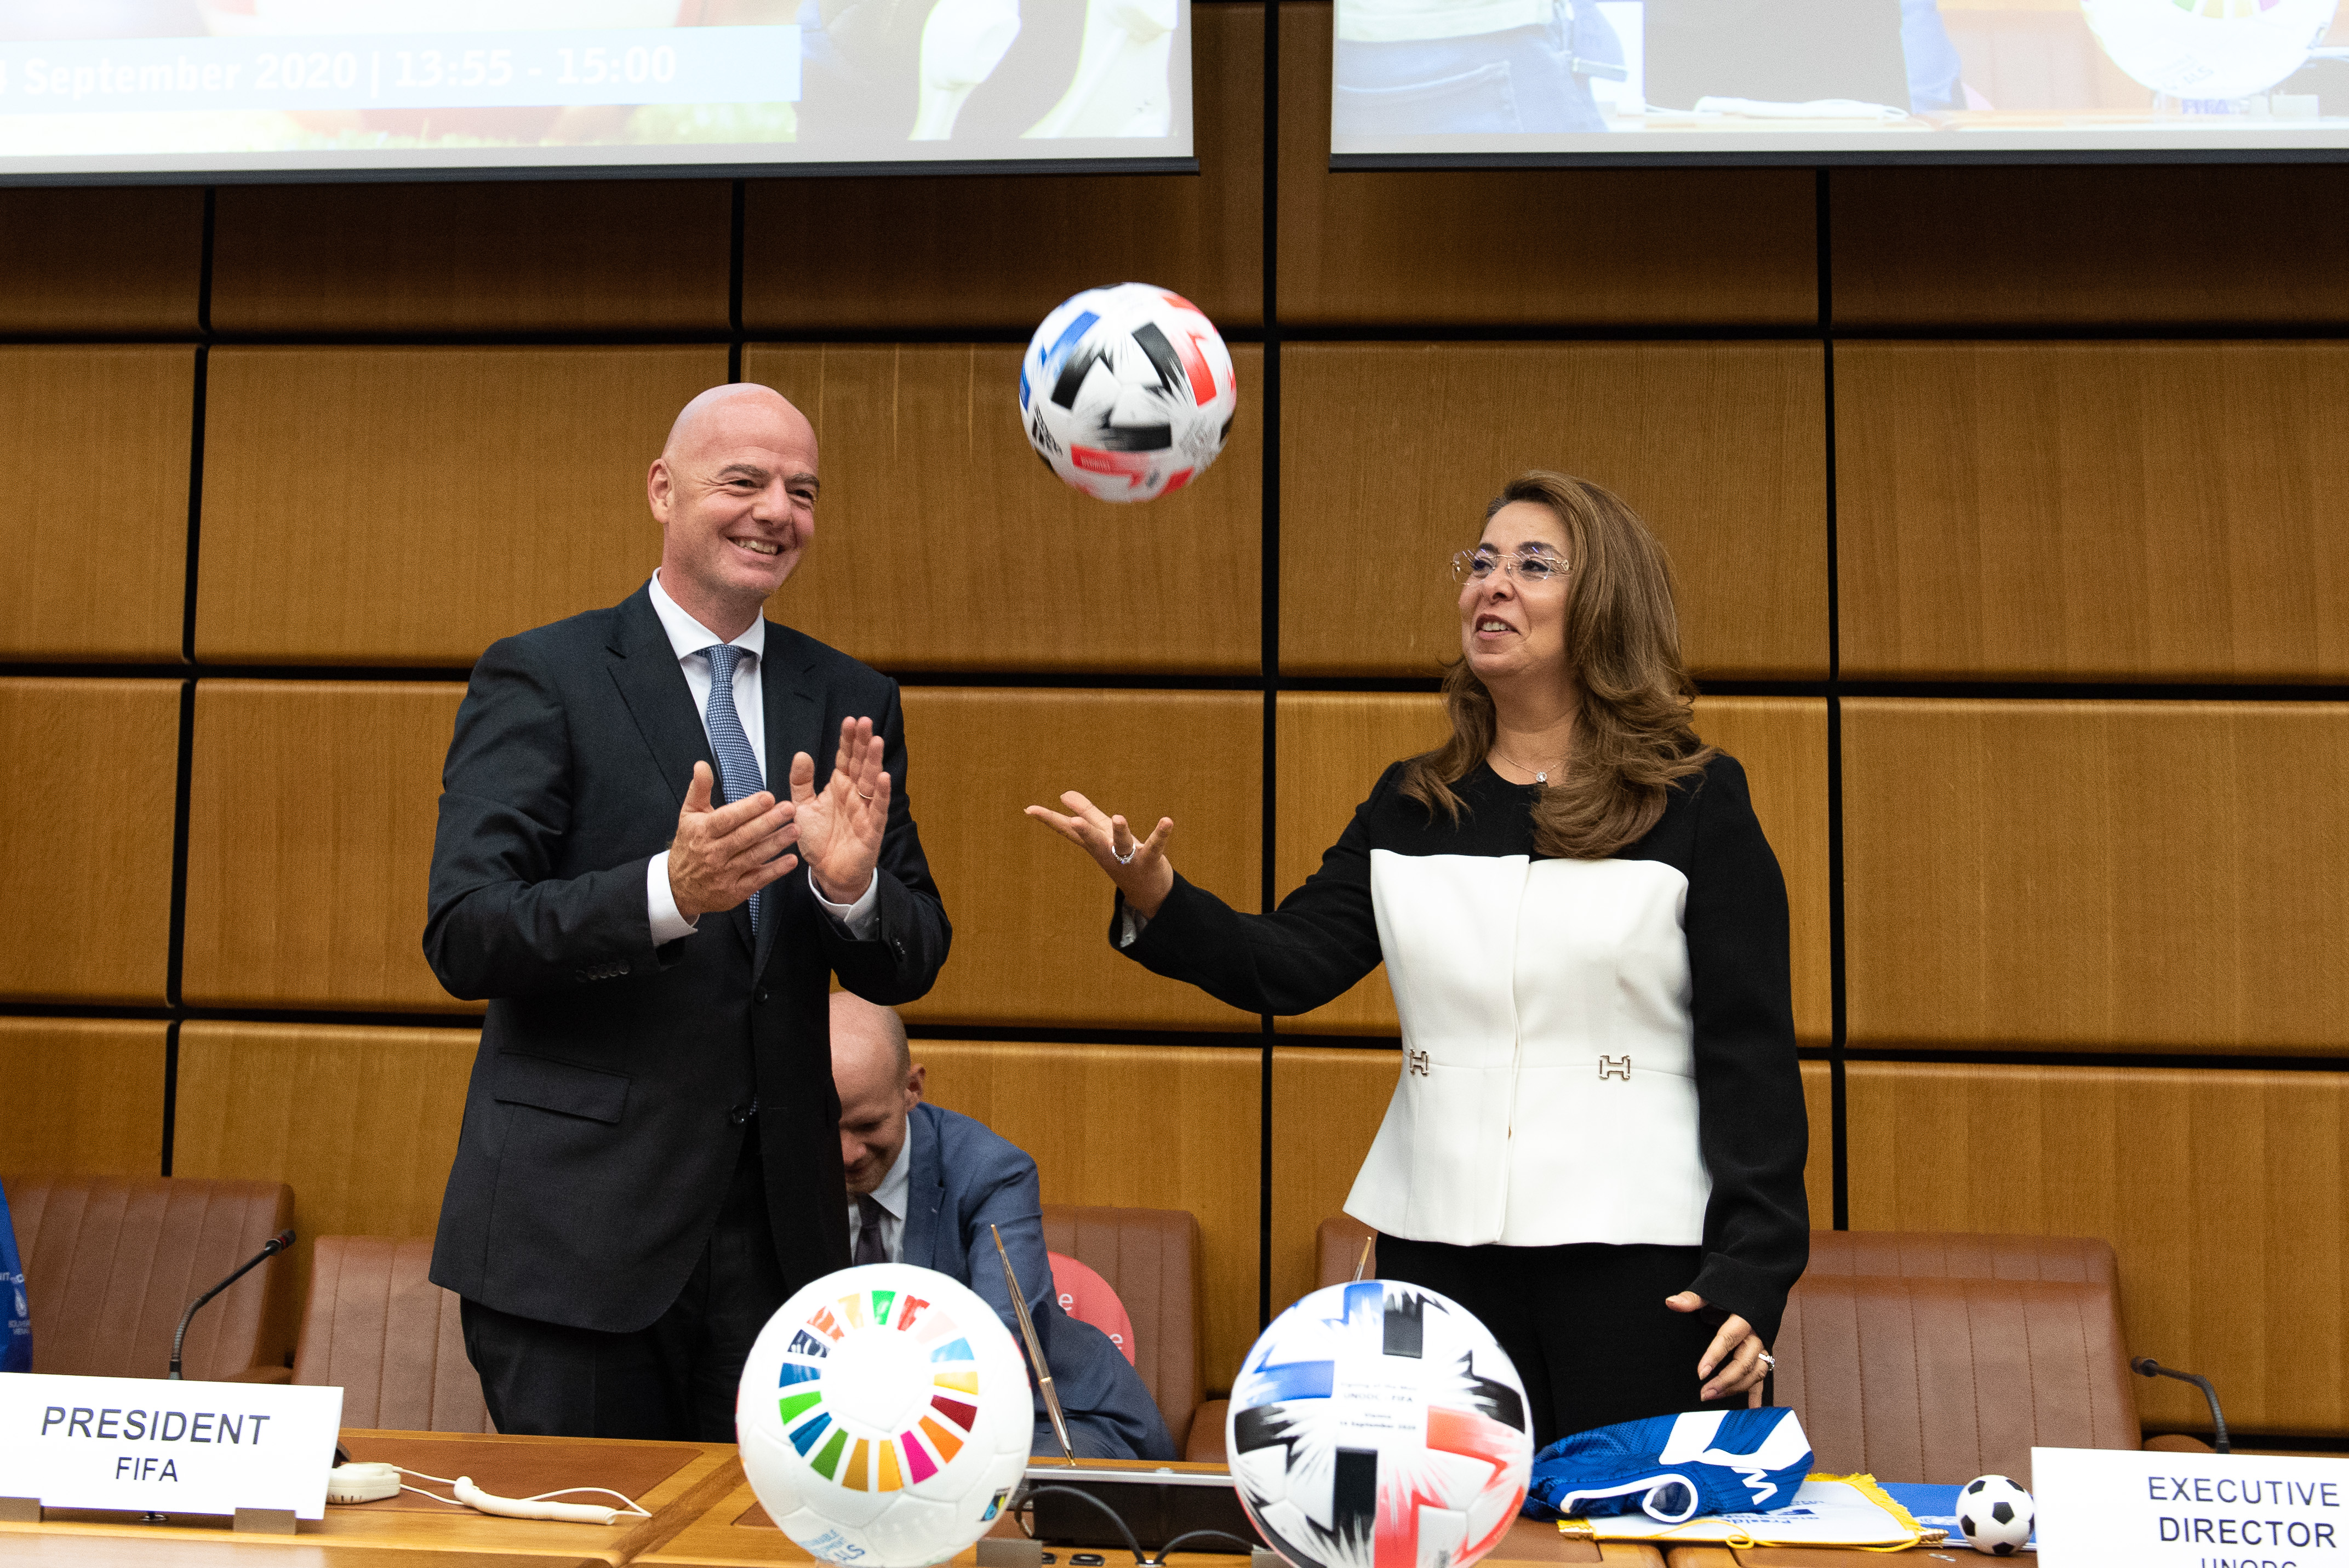 UNODC & FIFA partner to kick out corruption and foster youth development through football